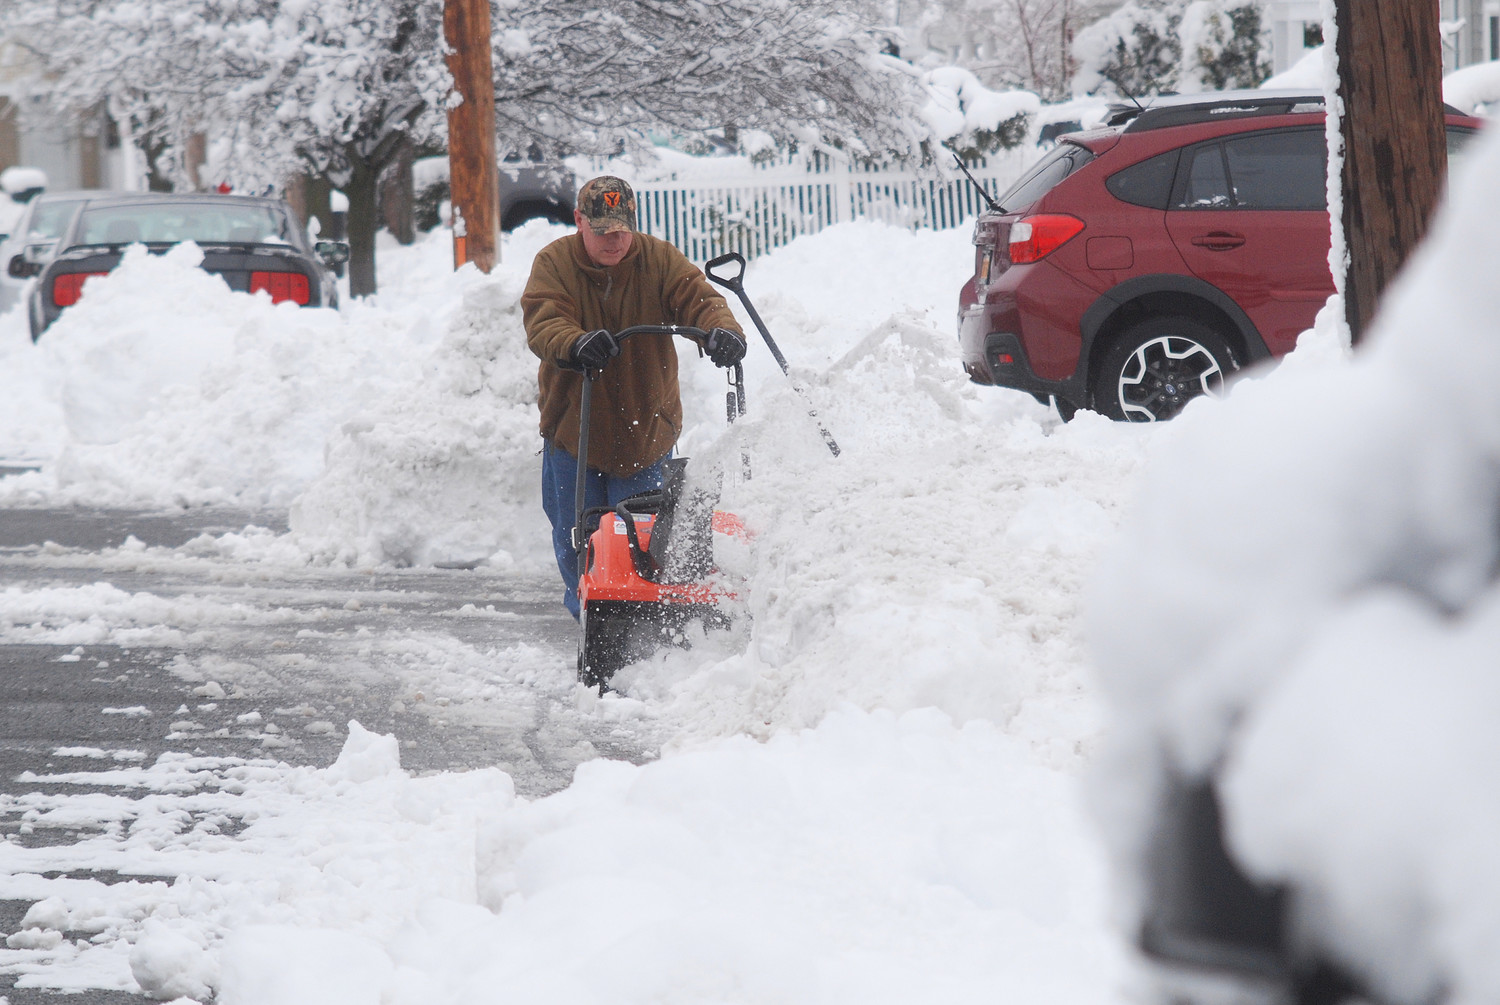 People across Nassau County spent Thursday morning clearing out their driveways after a nor'easter, which struck on the second day of spring, dumped nearly a foot of snow. Above, a resident of the Merrick Woods section of Merrick dug out in front of his home.